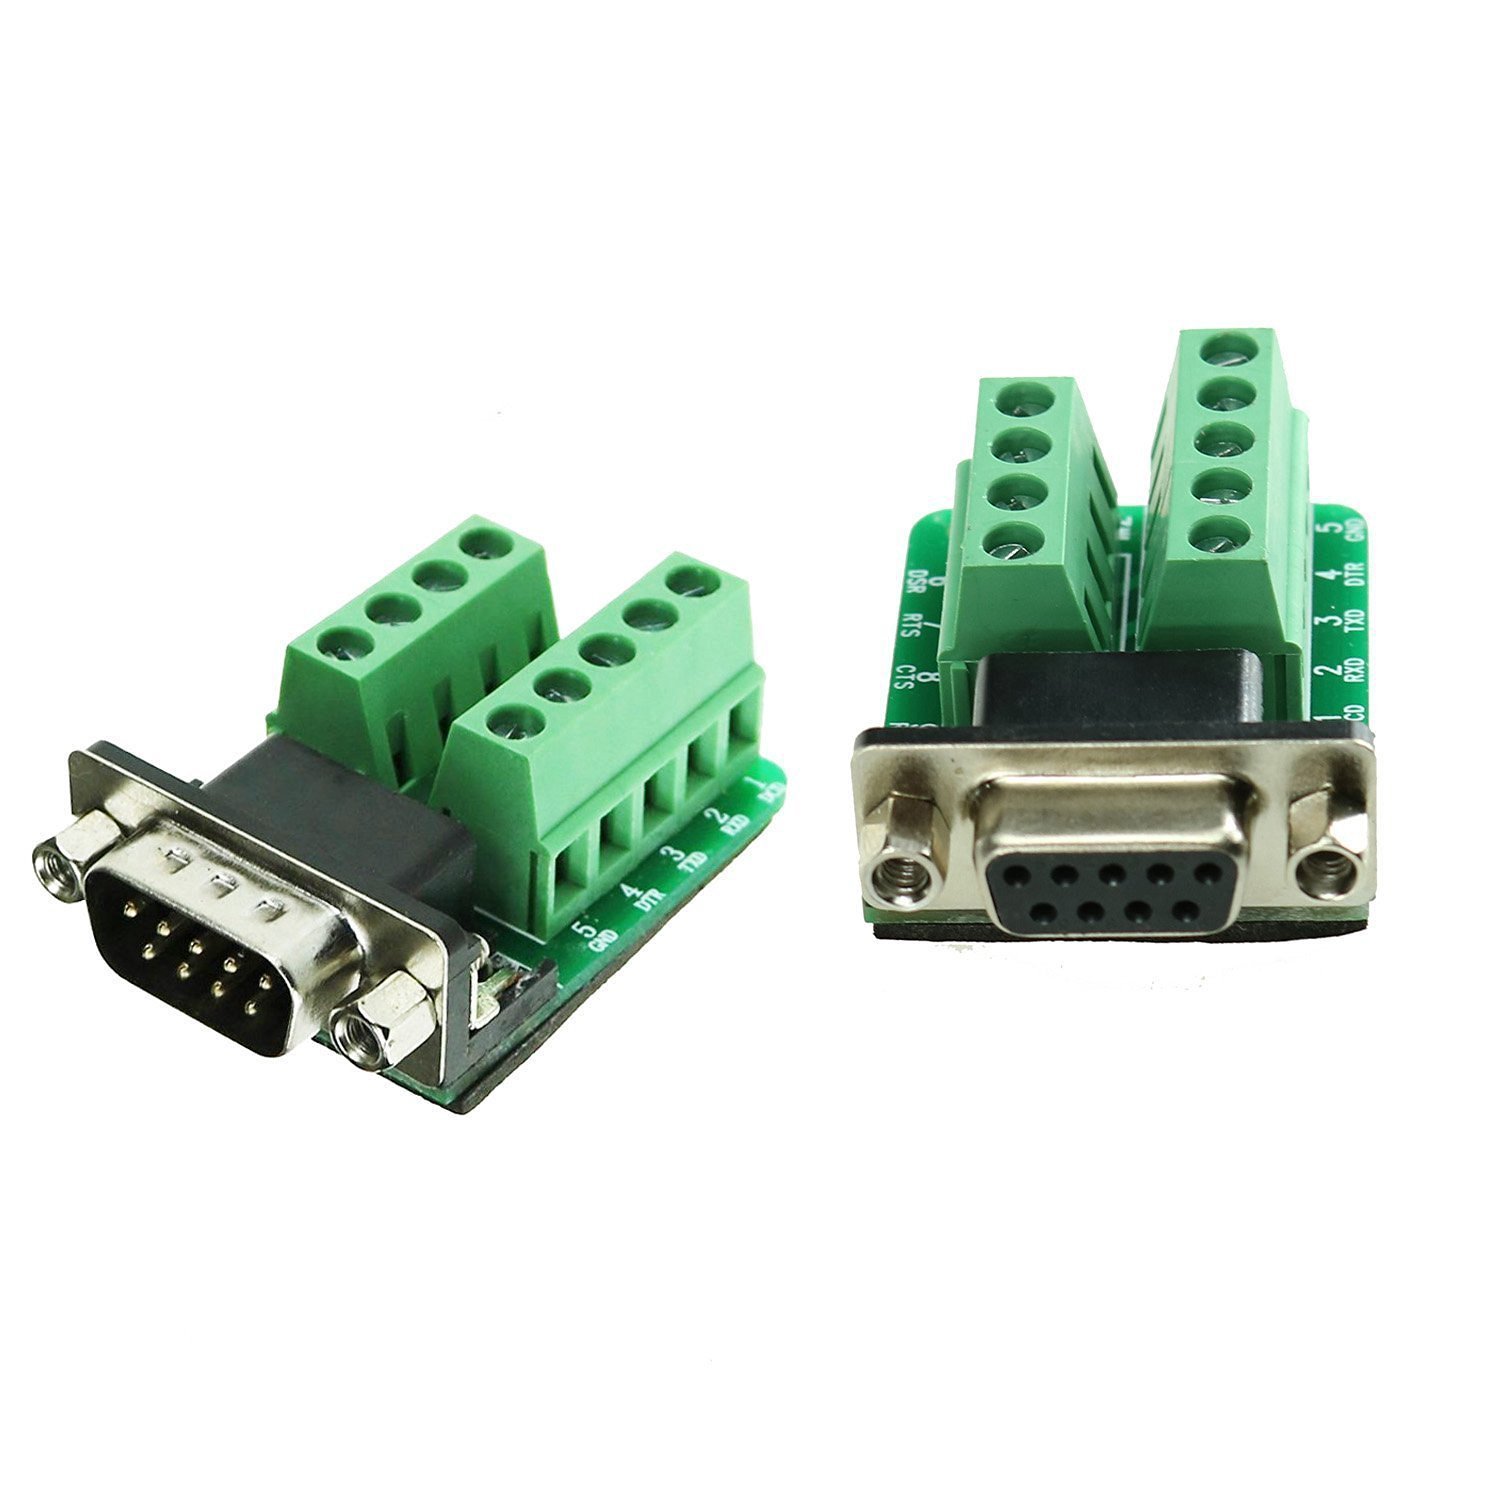 Swellder Connector Db9 D-sub Female Plug 9-pin Port 2 Row Terminal Breakout PCB Board Male Plug 9-pin Port 2 Row